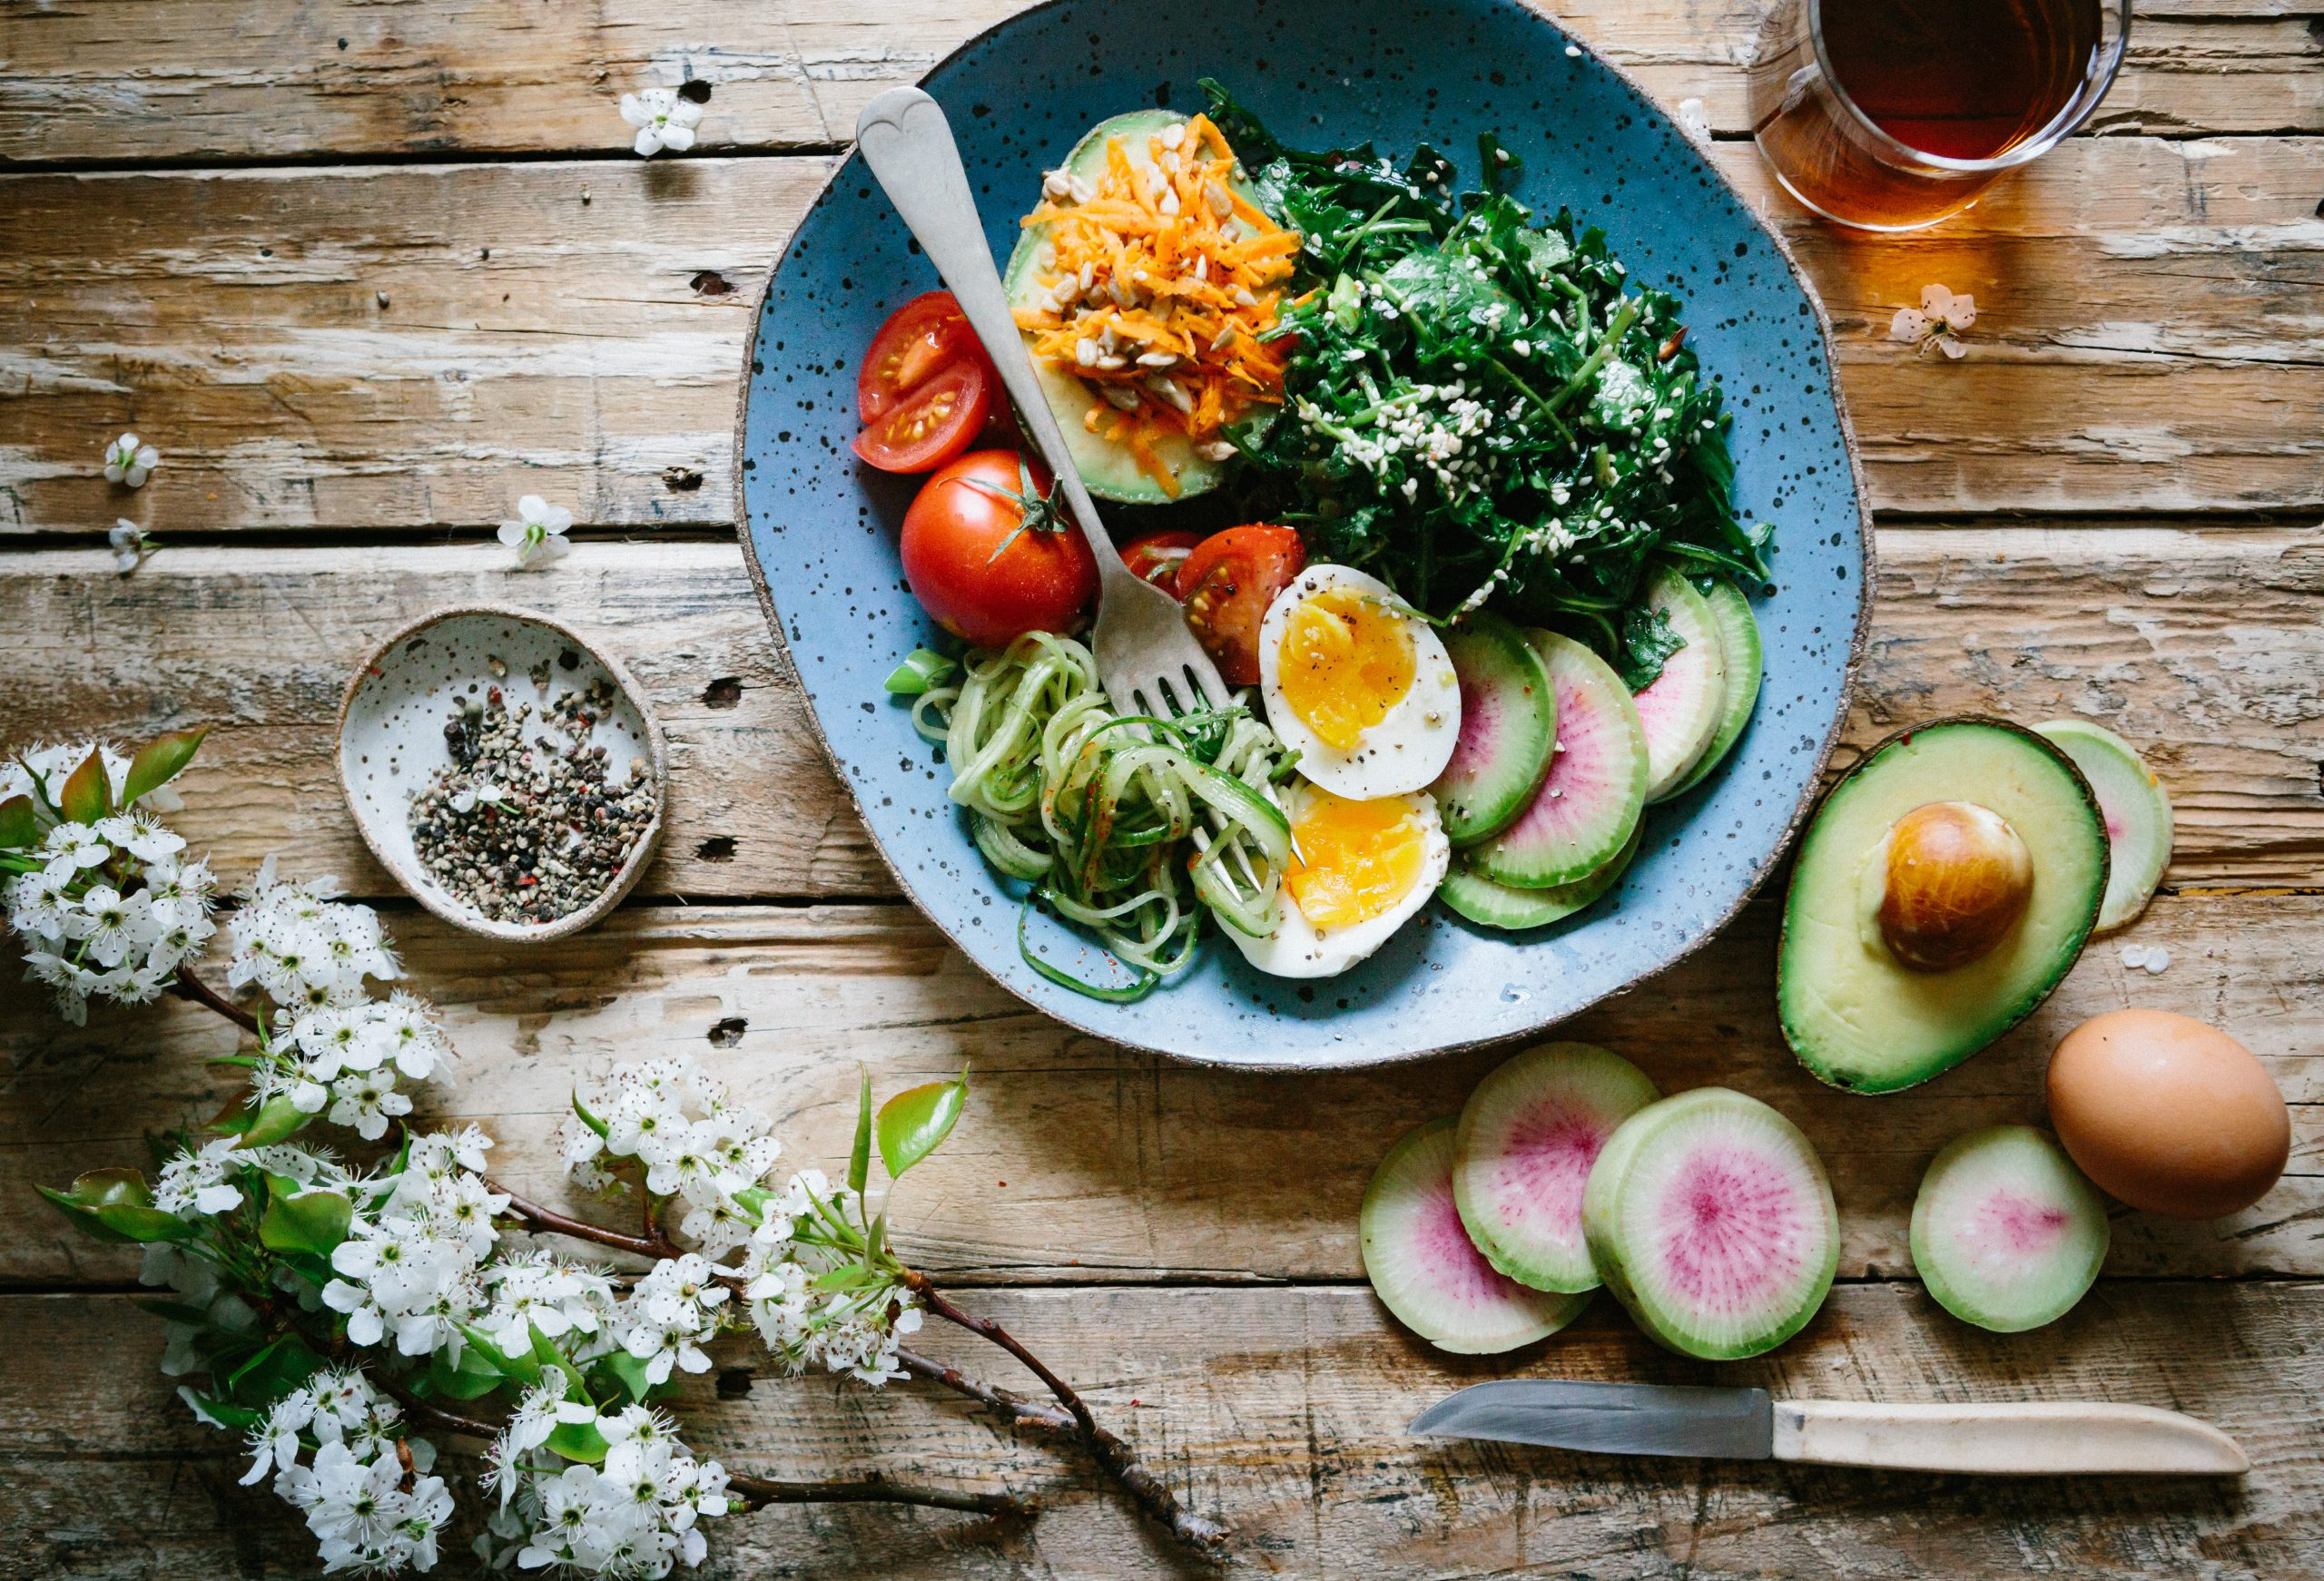 Why schools should consider a vegetarian diet